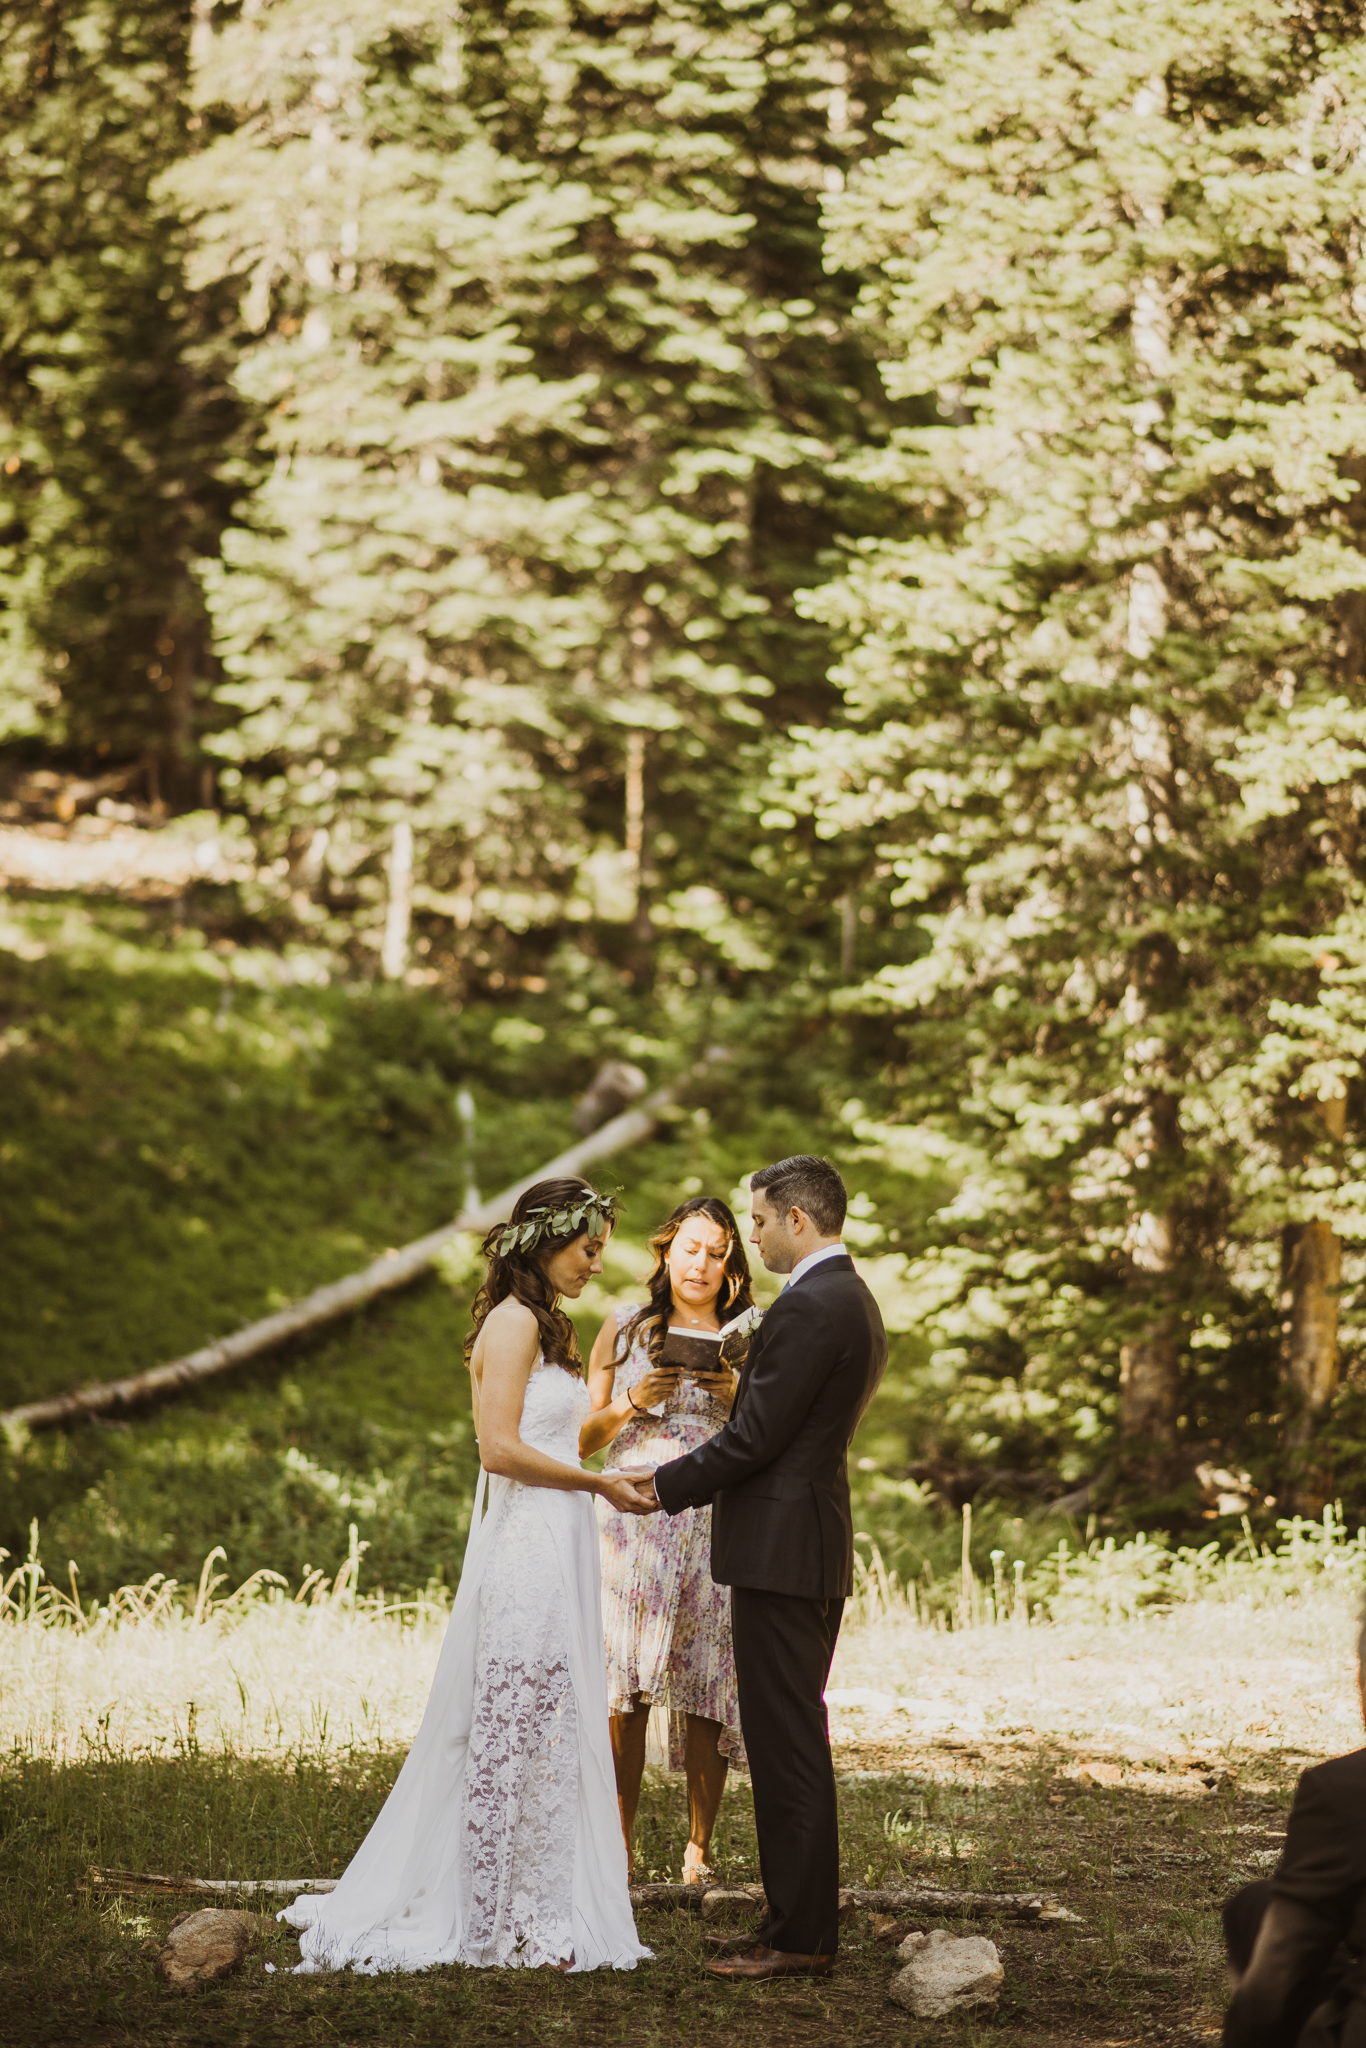 ©Isaiah + Taylor Photography - Estes National Park Adventure Elopement, Colorado Rockies-27.jpg